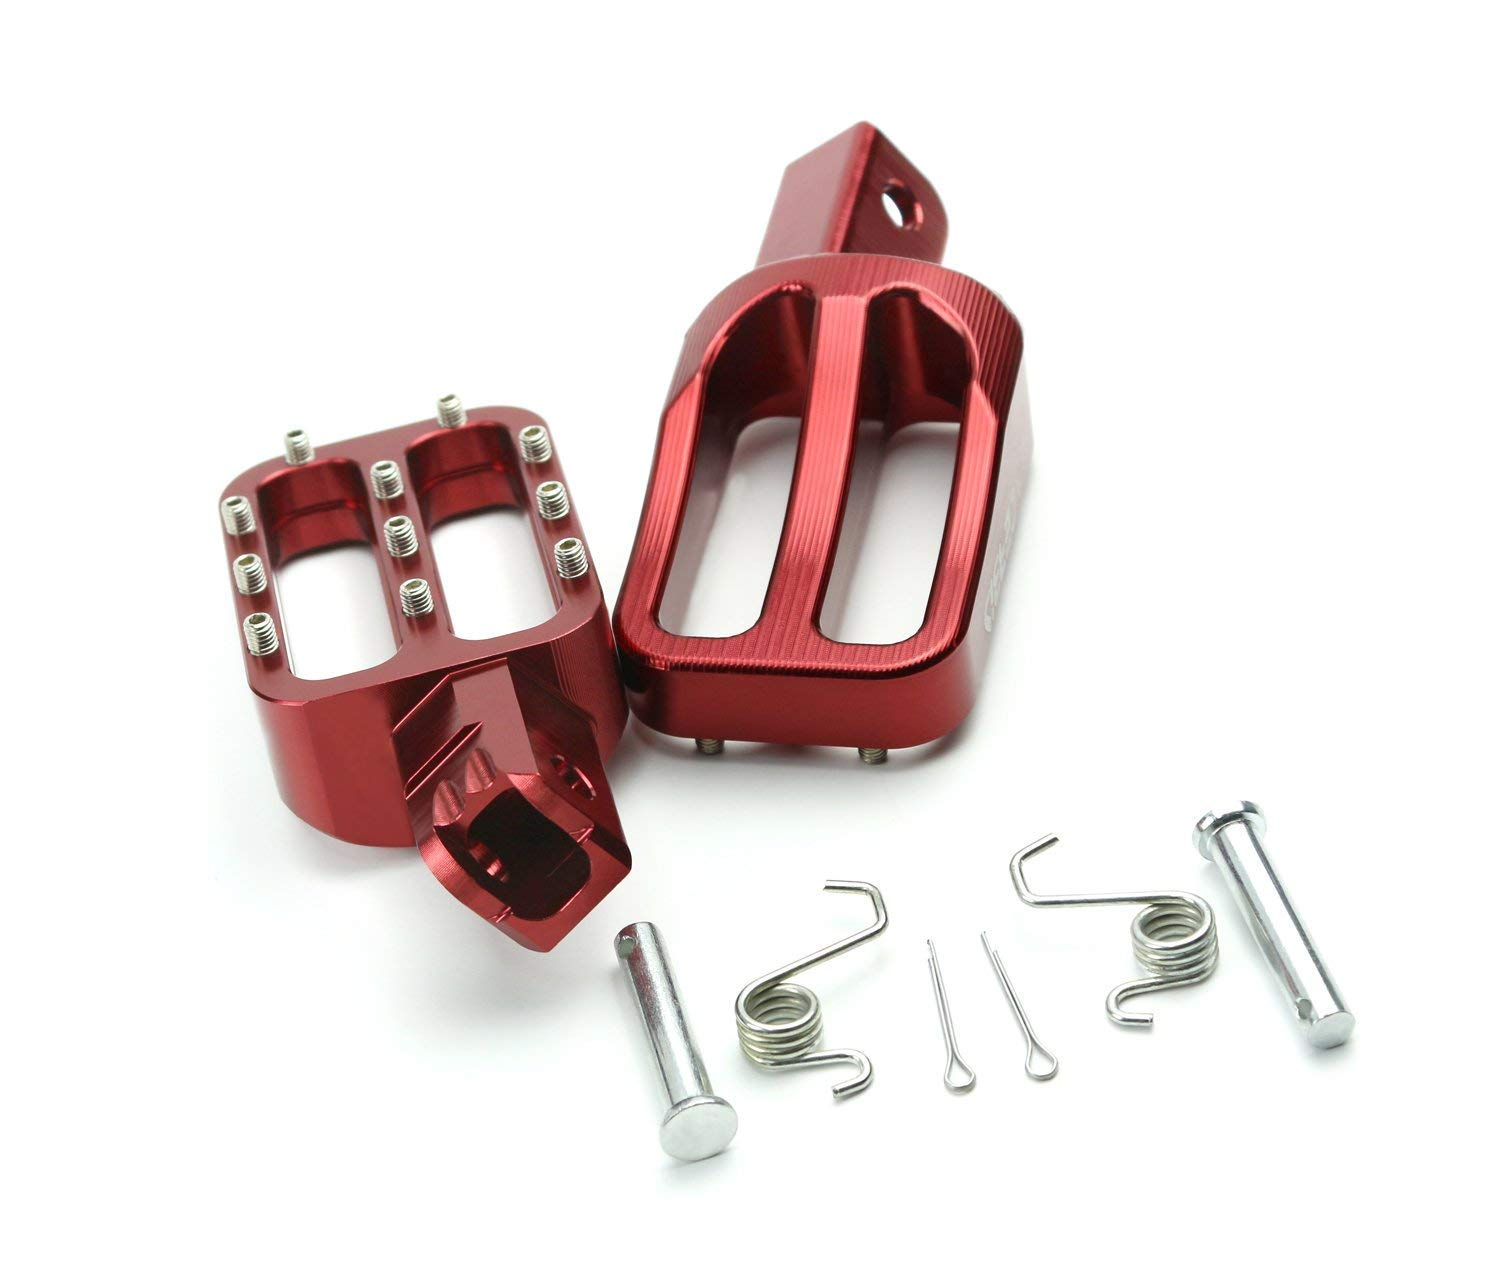 Foot Pegs Footpegs Footrest Pedals CNC Aluminum Foot Rests For For Honda CRF50 XR50 Pit Dirt Motor Trail Bike